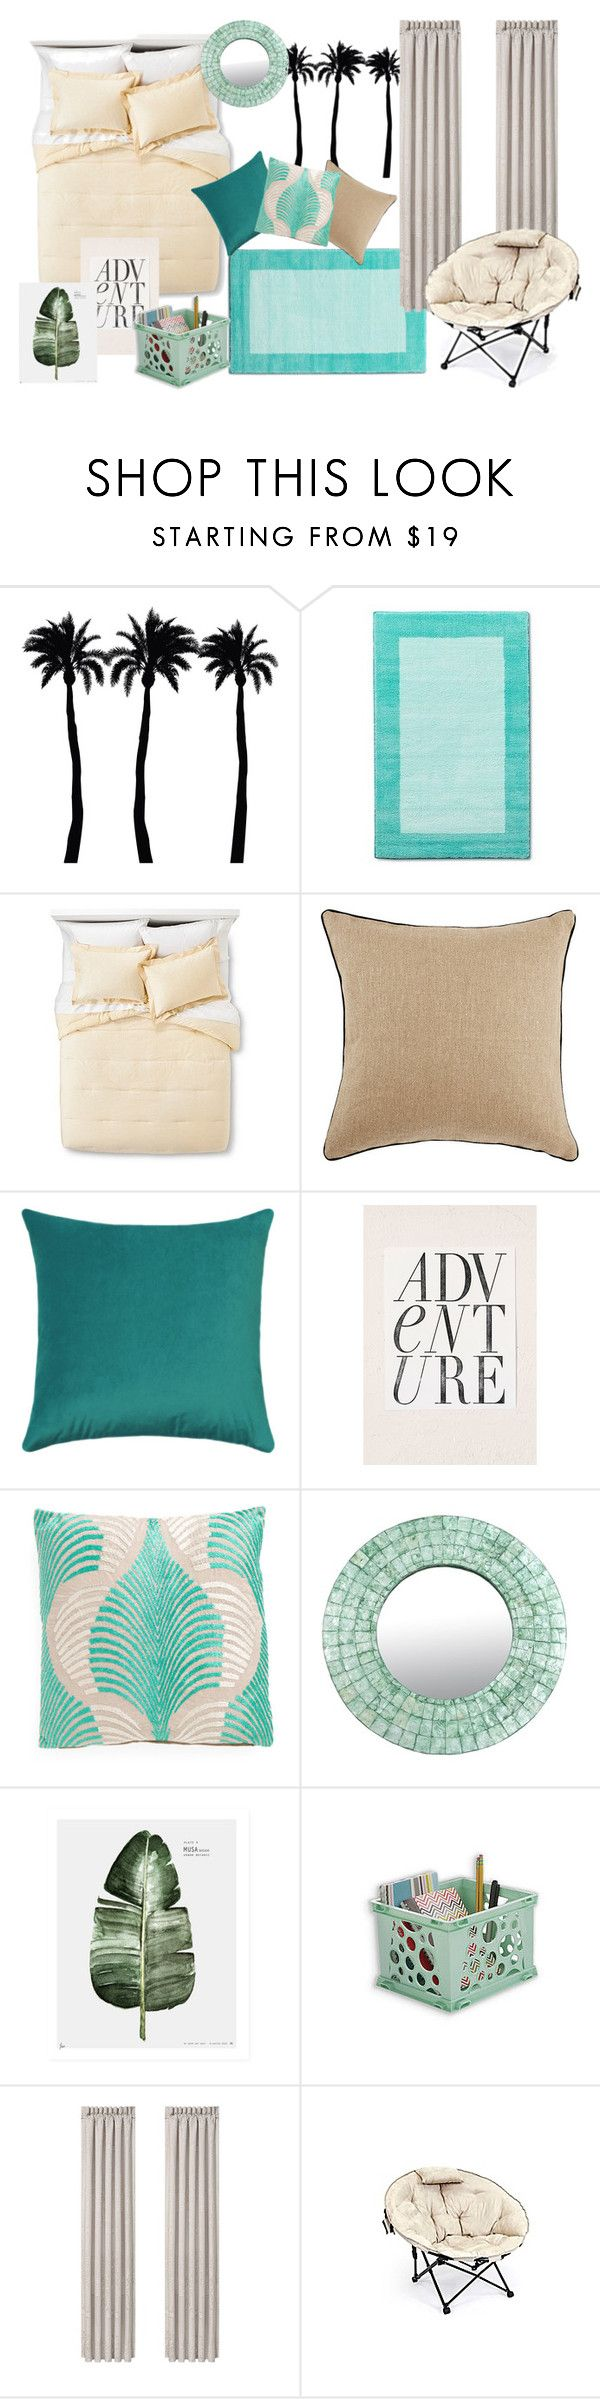 Threshold home decor shop for threshold home decor on polyvore -  Themed Dorm Beach Paradise By Bncollege On Polyvore Featuring Interior Interiors